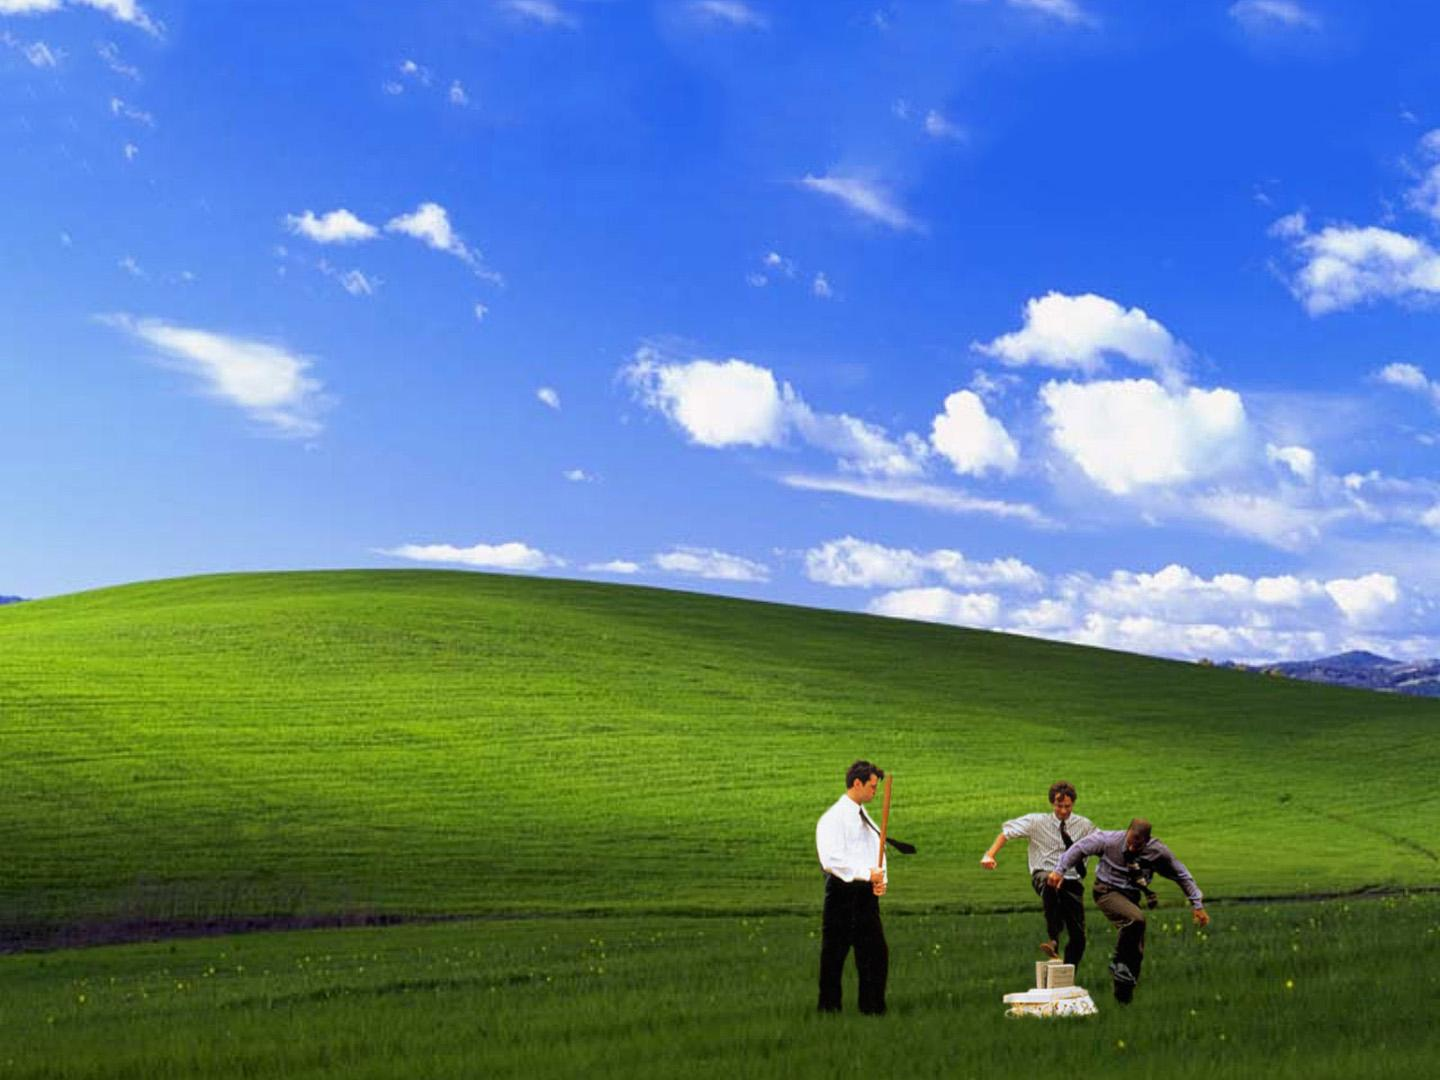 Office Space, XP Bliss style [1440x1080] : wallpapers